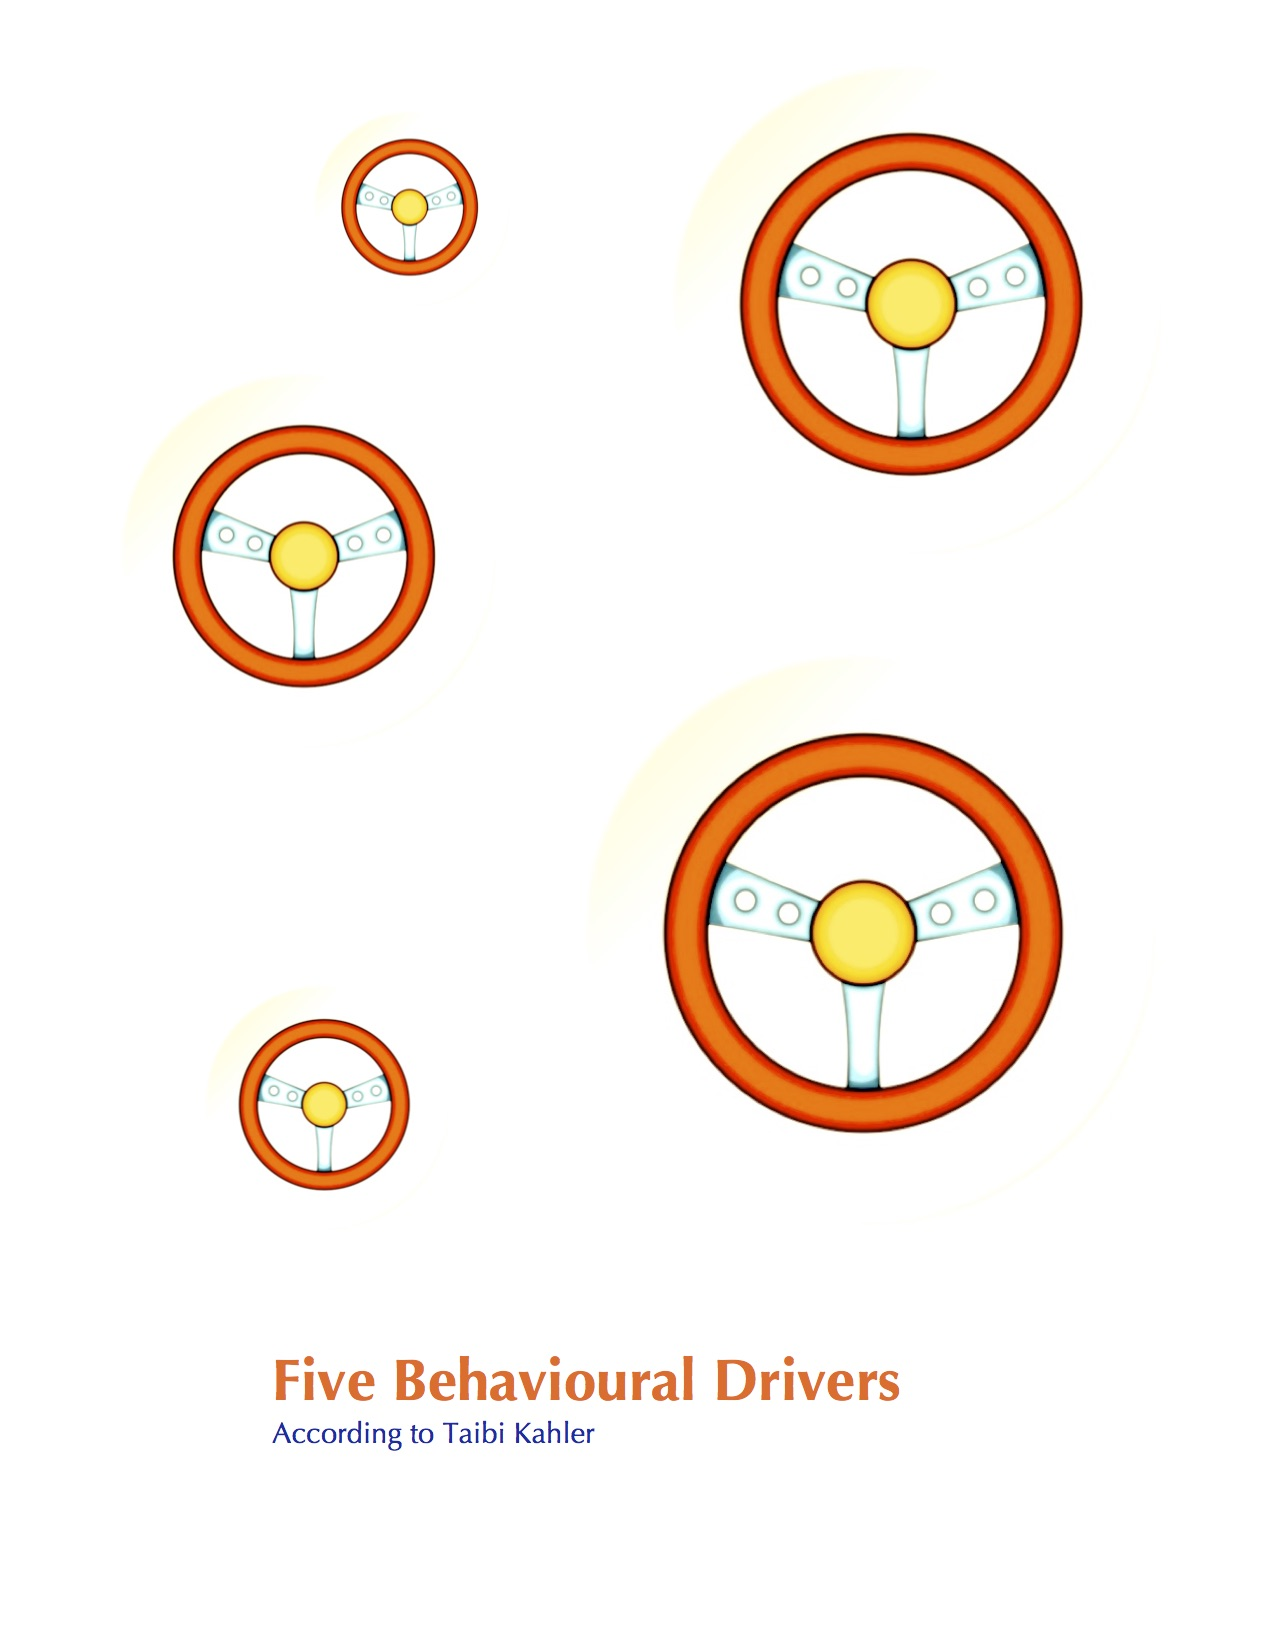 FIVE BEHAVIOURAL DRIVERS 2019.jpg